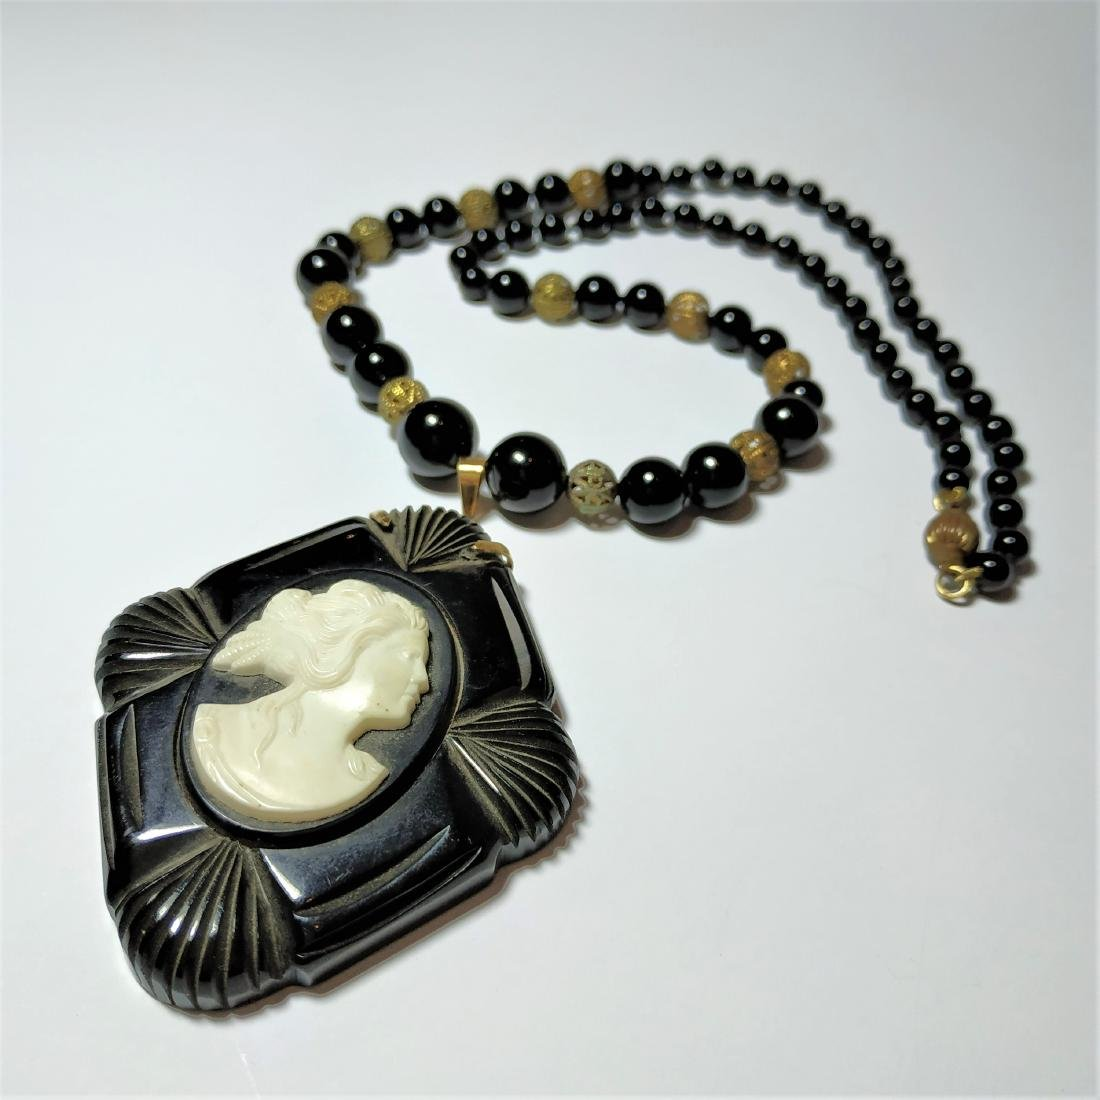 A ancient necklace and pendant - gold, Onyx, jet, bone